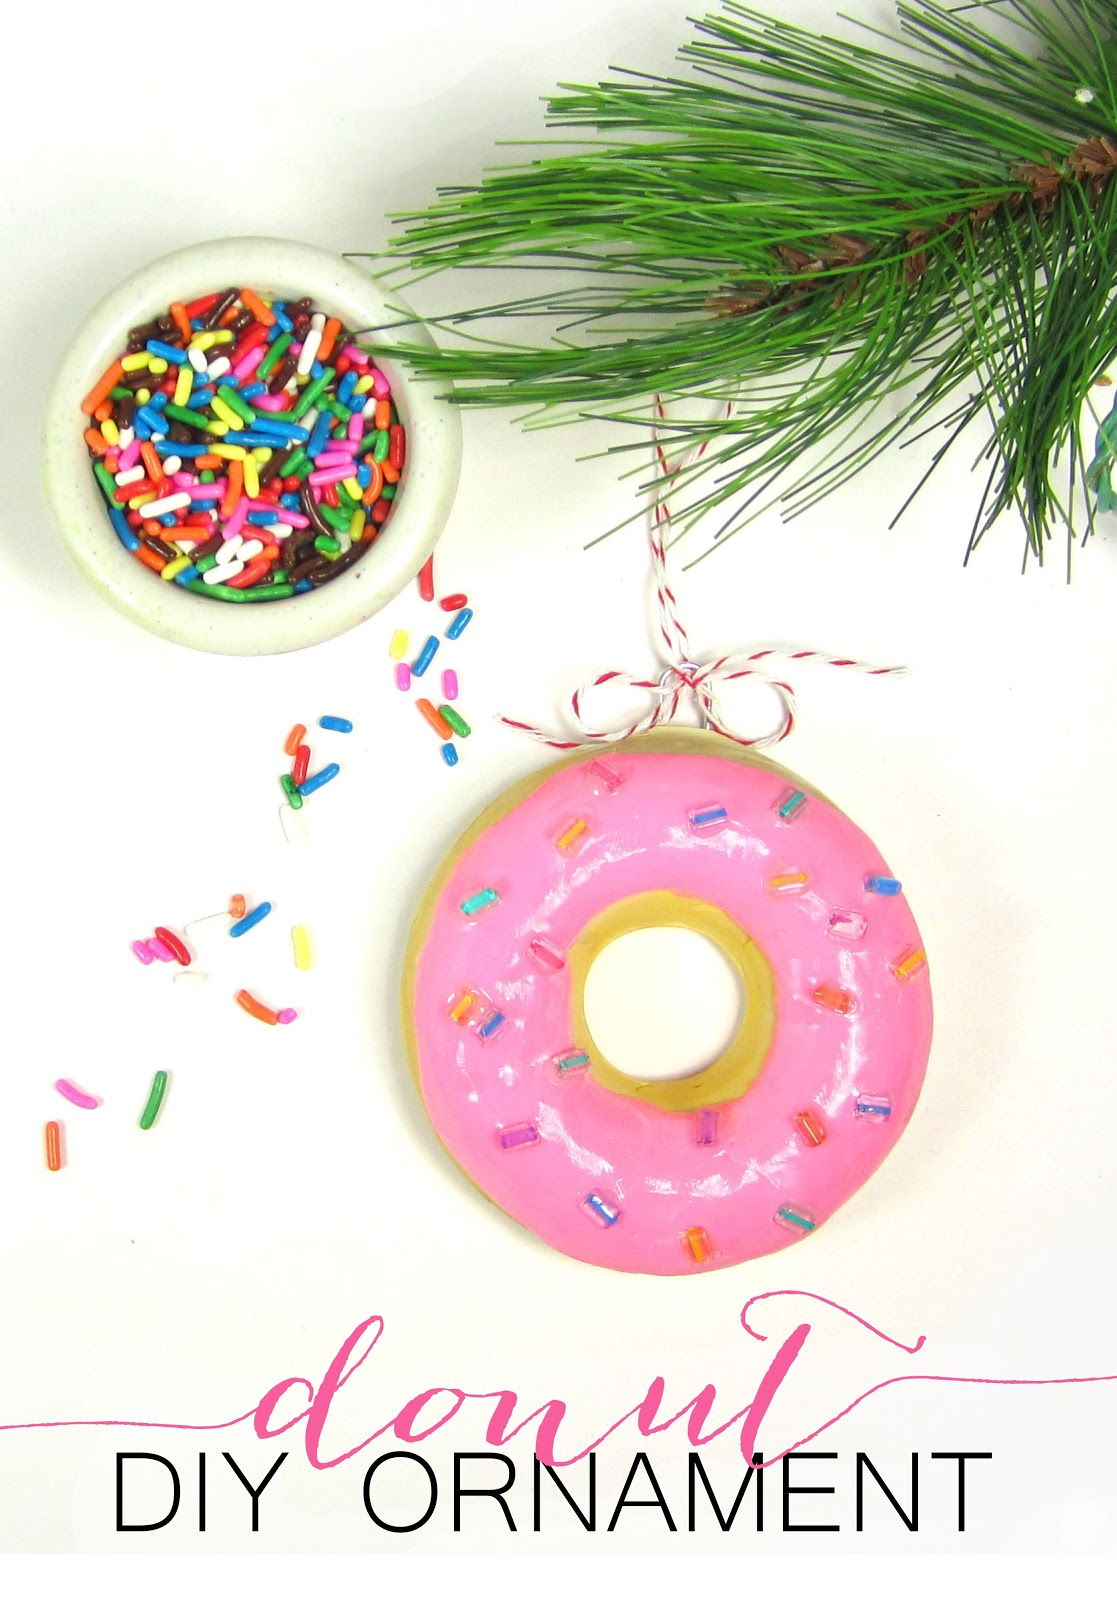 Christmas ornaments to make at home - 50 Homemade Christmas Ornaments Diy Handmade Holiday Tree Ornament Craft Ideas